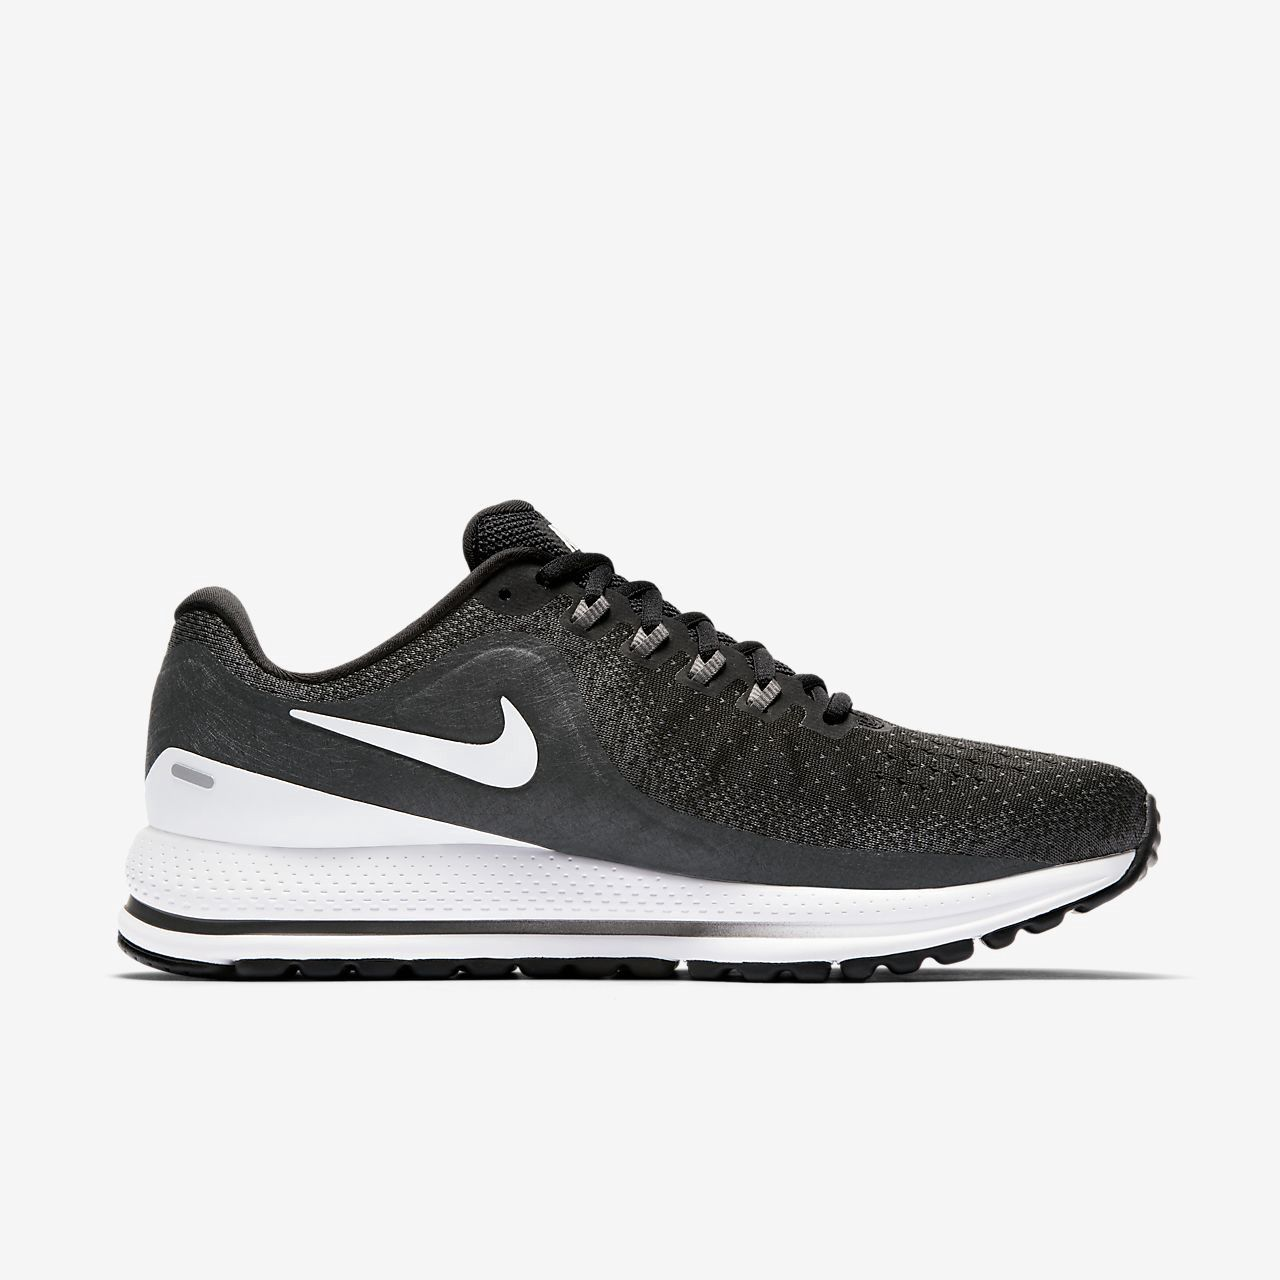 on sale 7a736 5c991 Nike Air Zoom Vomero 13 Mens Running Shoe - 11.5 Grey